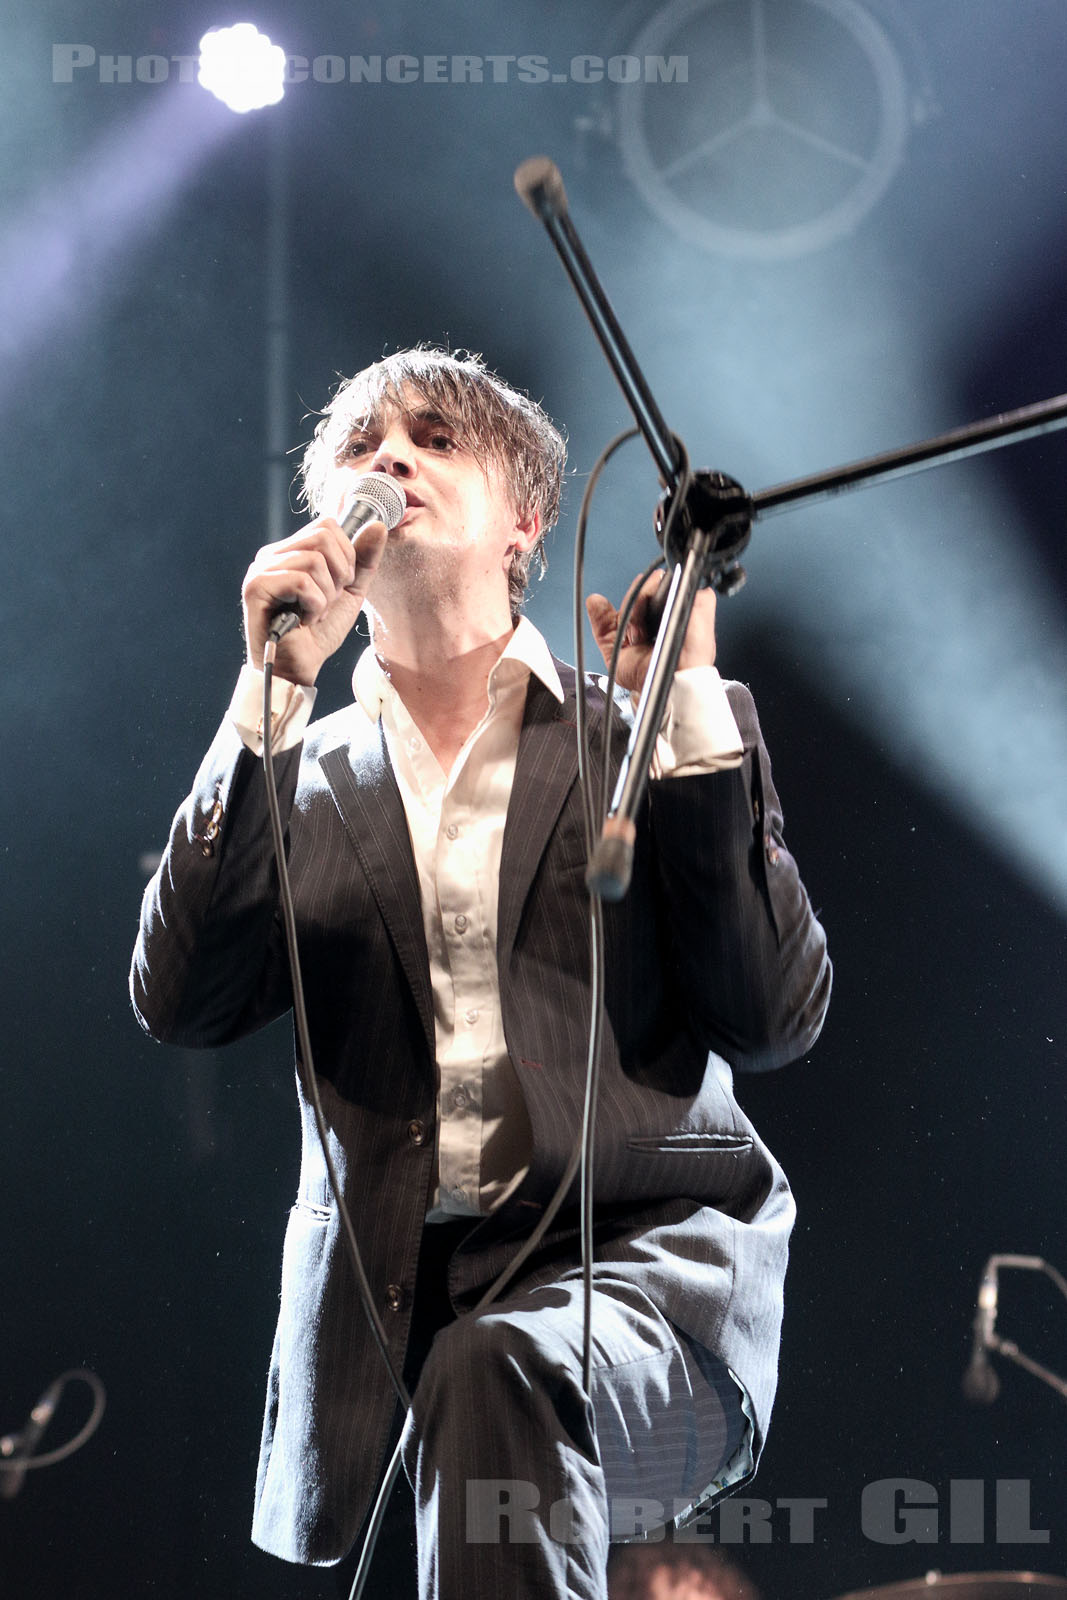 PETER DOHERTY - 2017-05-04 - PARIS - Place de la Republique